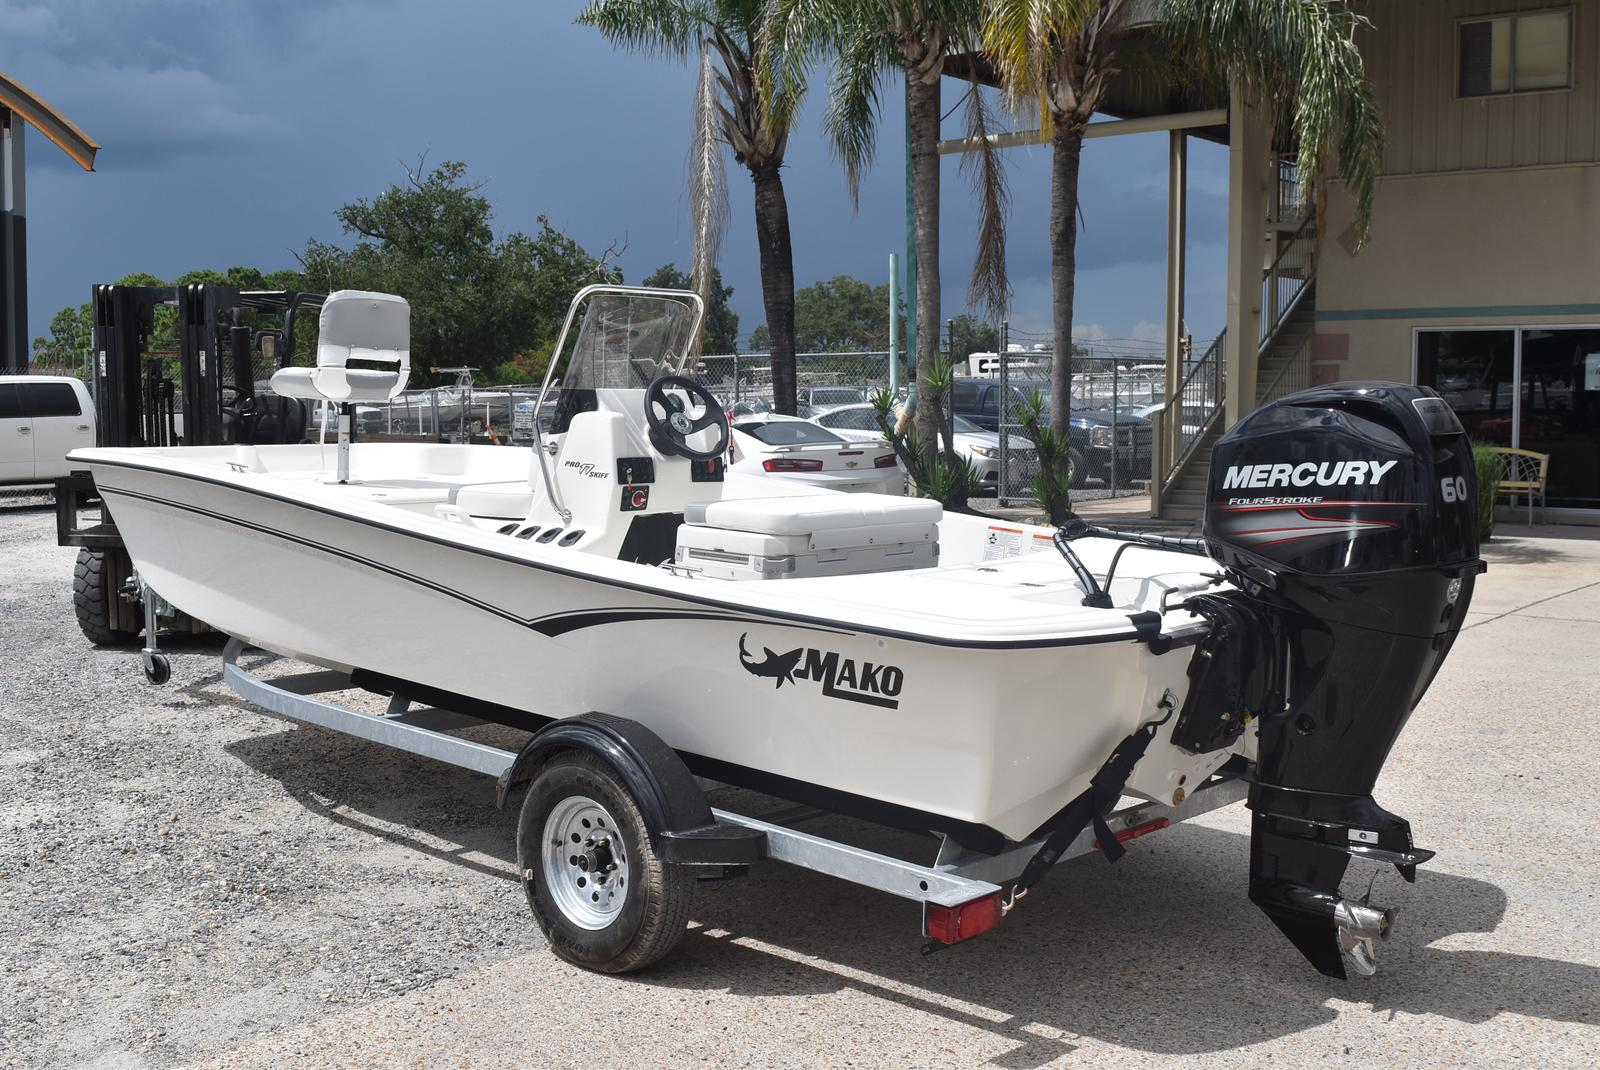 2020 Mako boat for sale, model of the boat is Pro Skiff 17, 75 ELPT & Image # 188 of 702